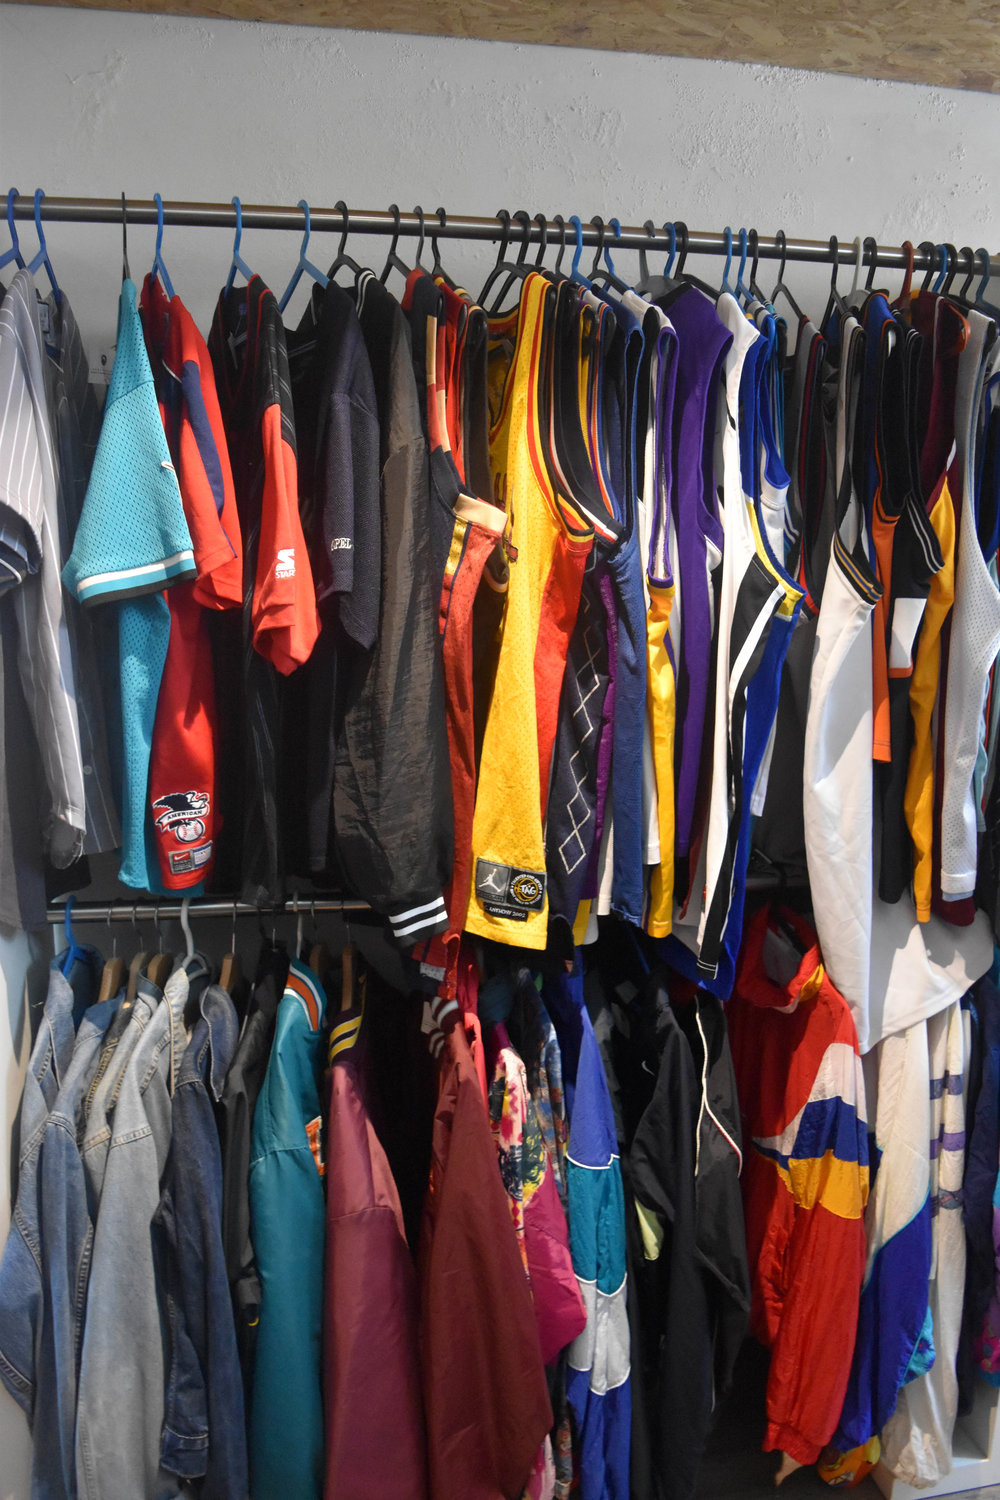 Need a jersey? A colorful windbreaker? Come here.